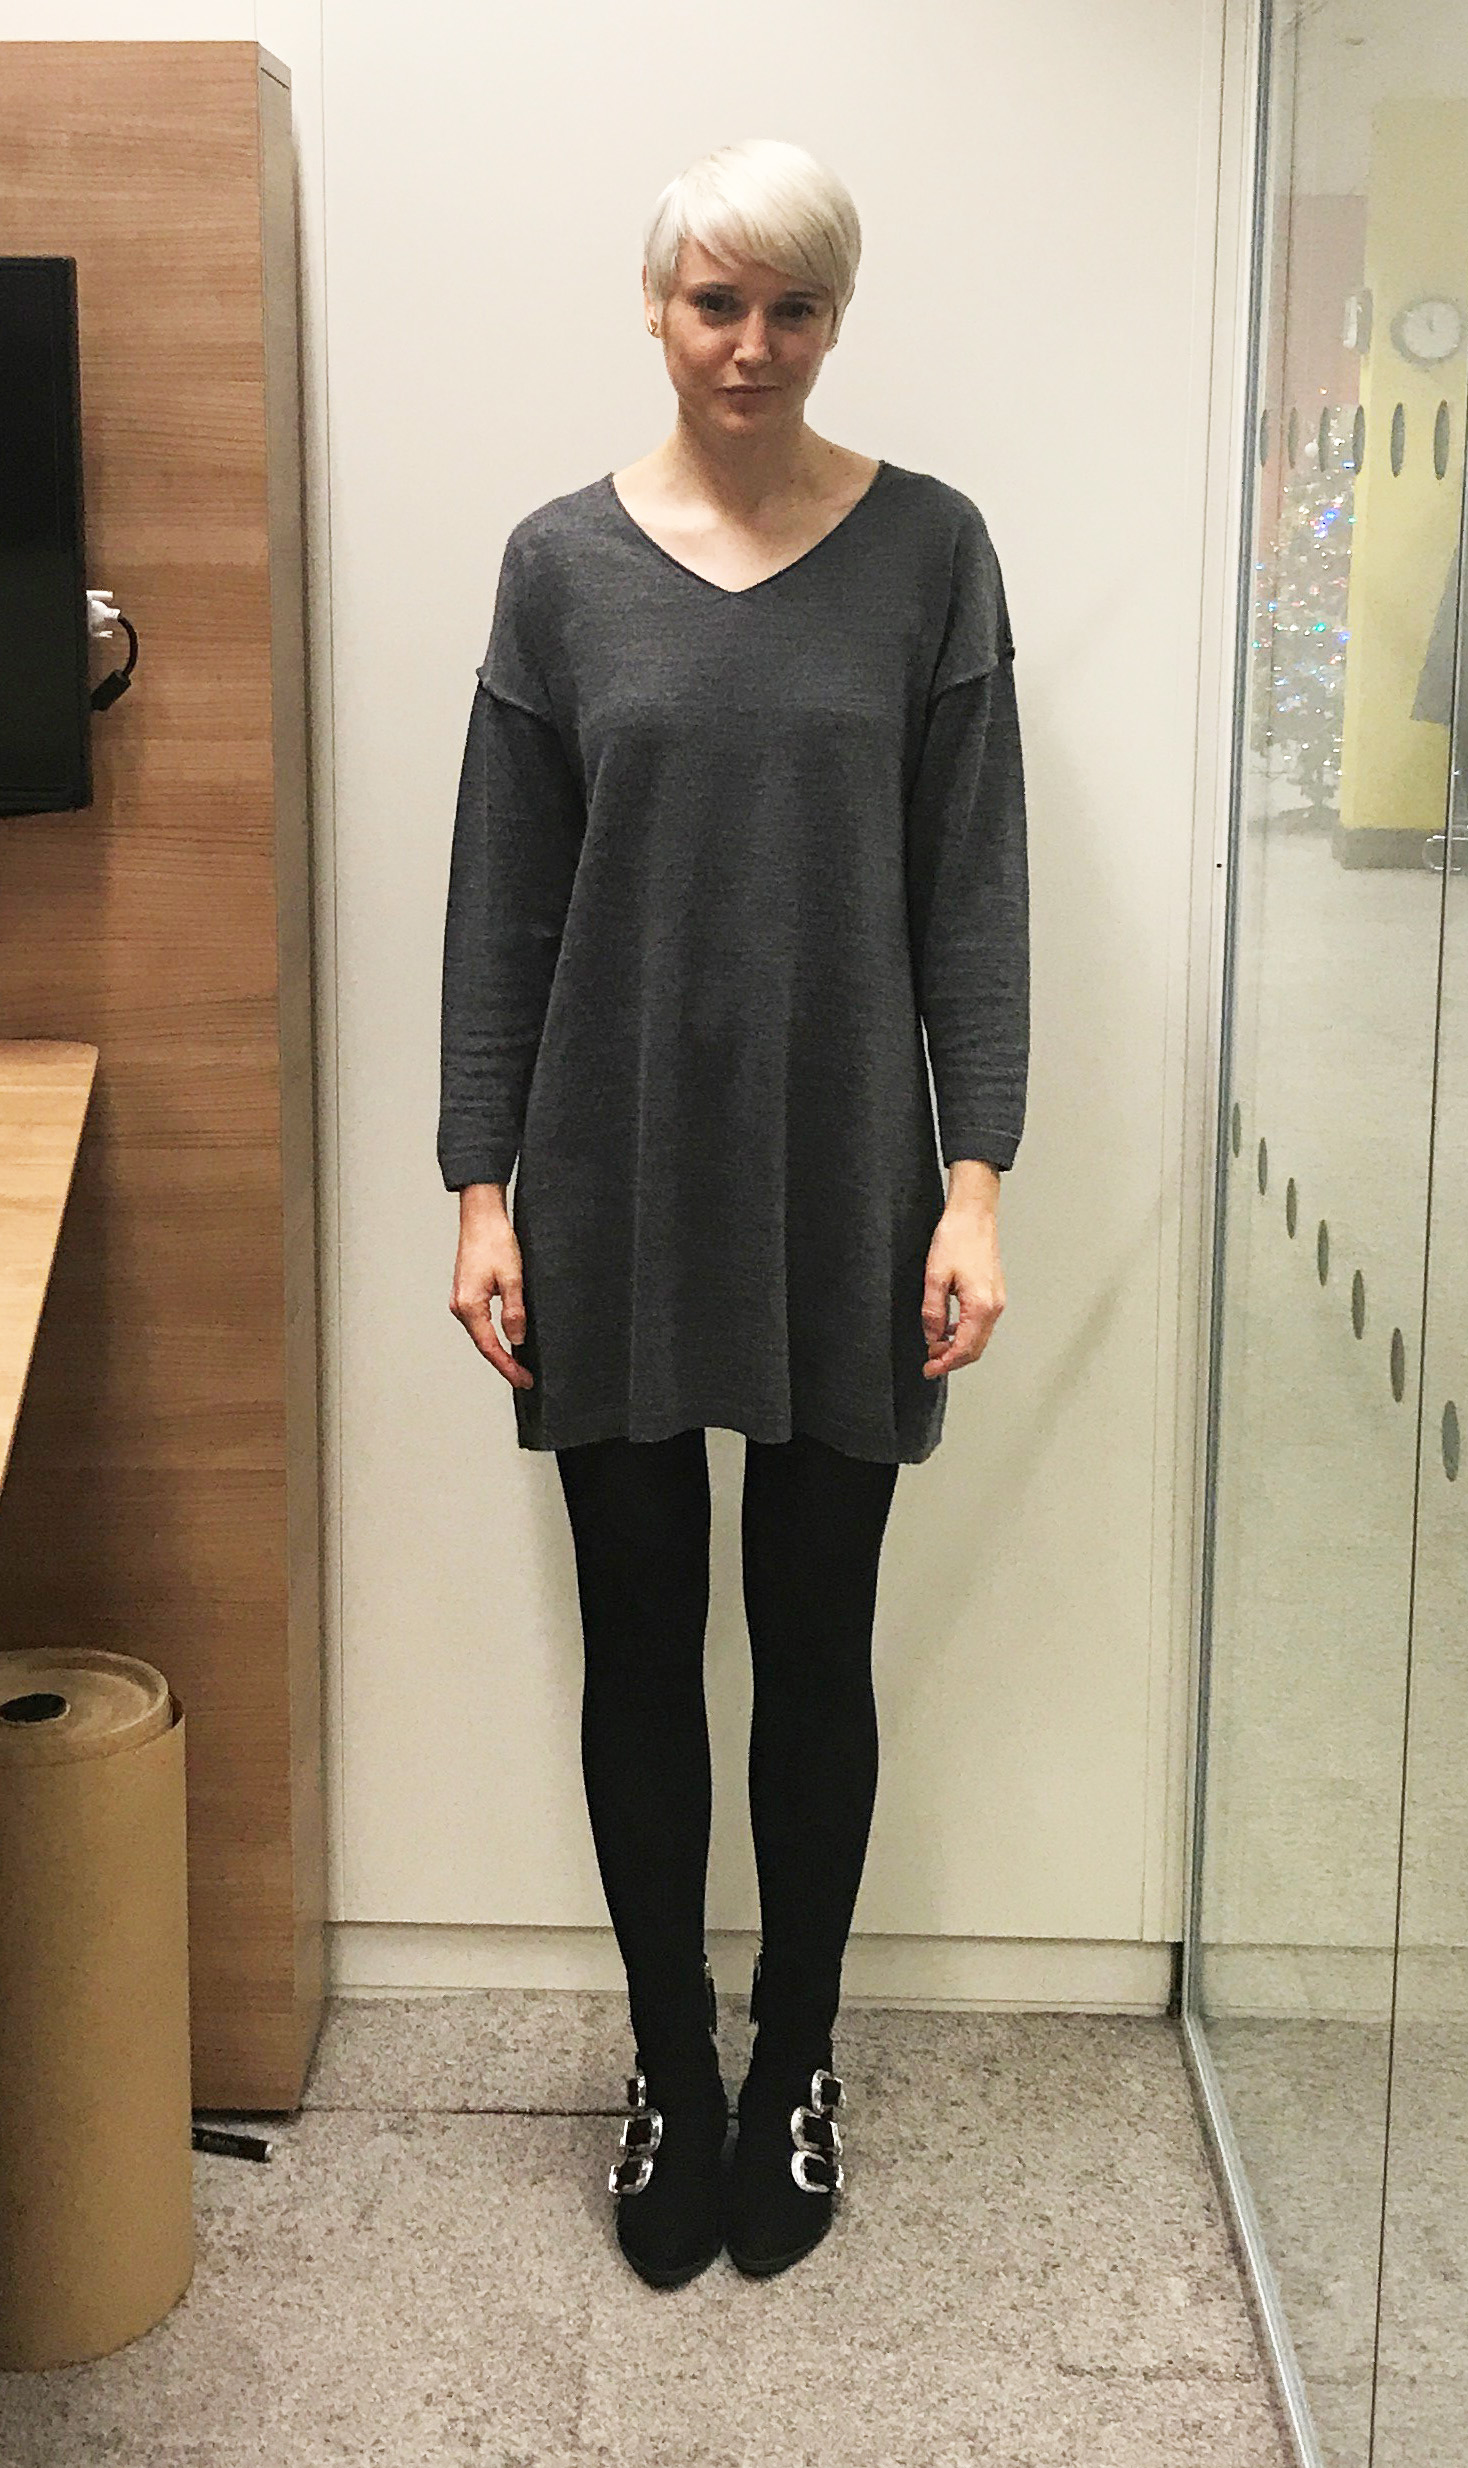 Katie wearing Wolford Cotton Velvet Black Tights